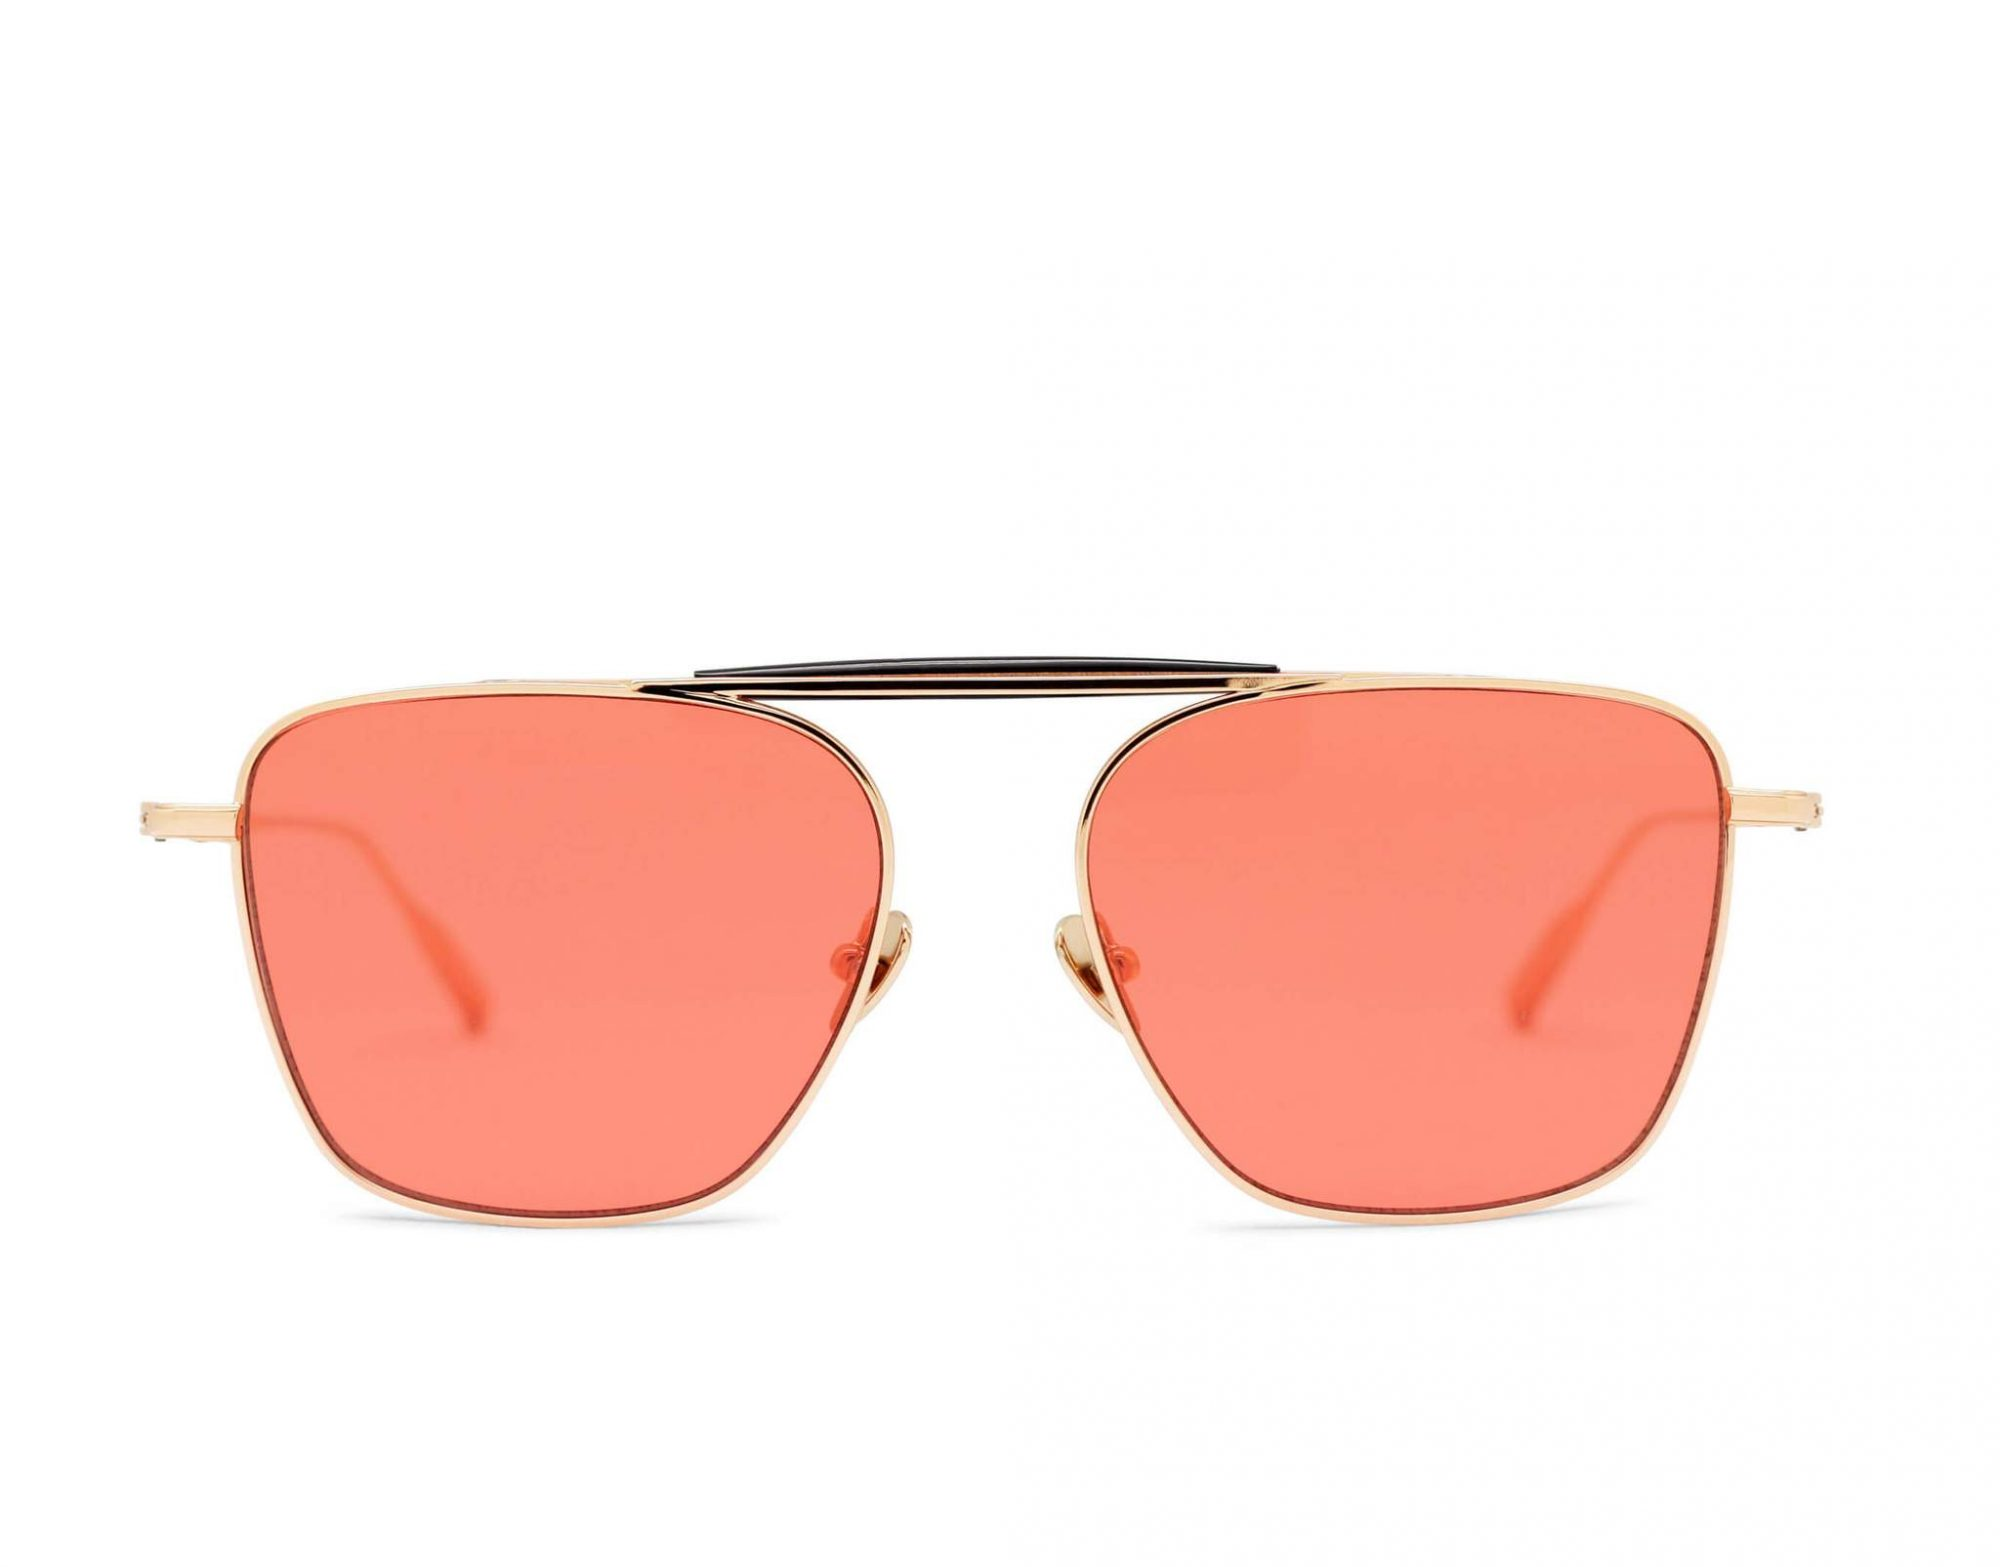 Amavii Sunglasses